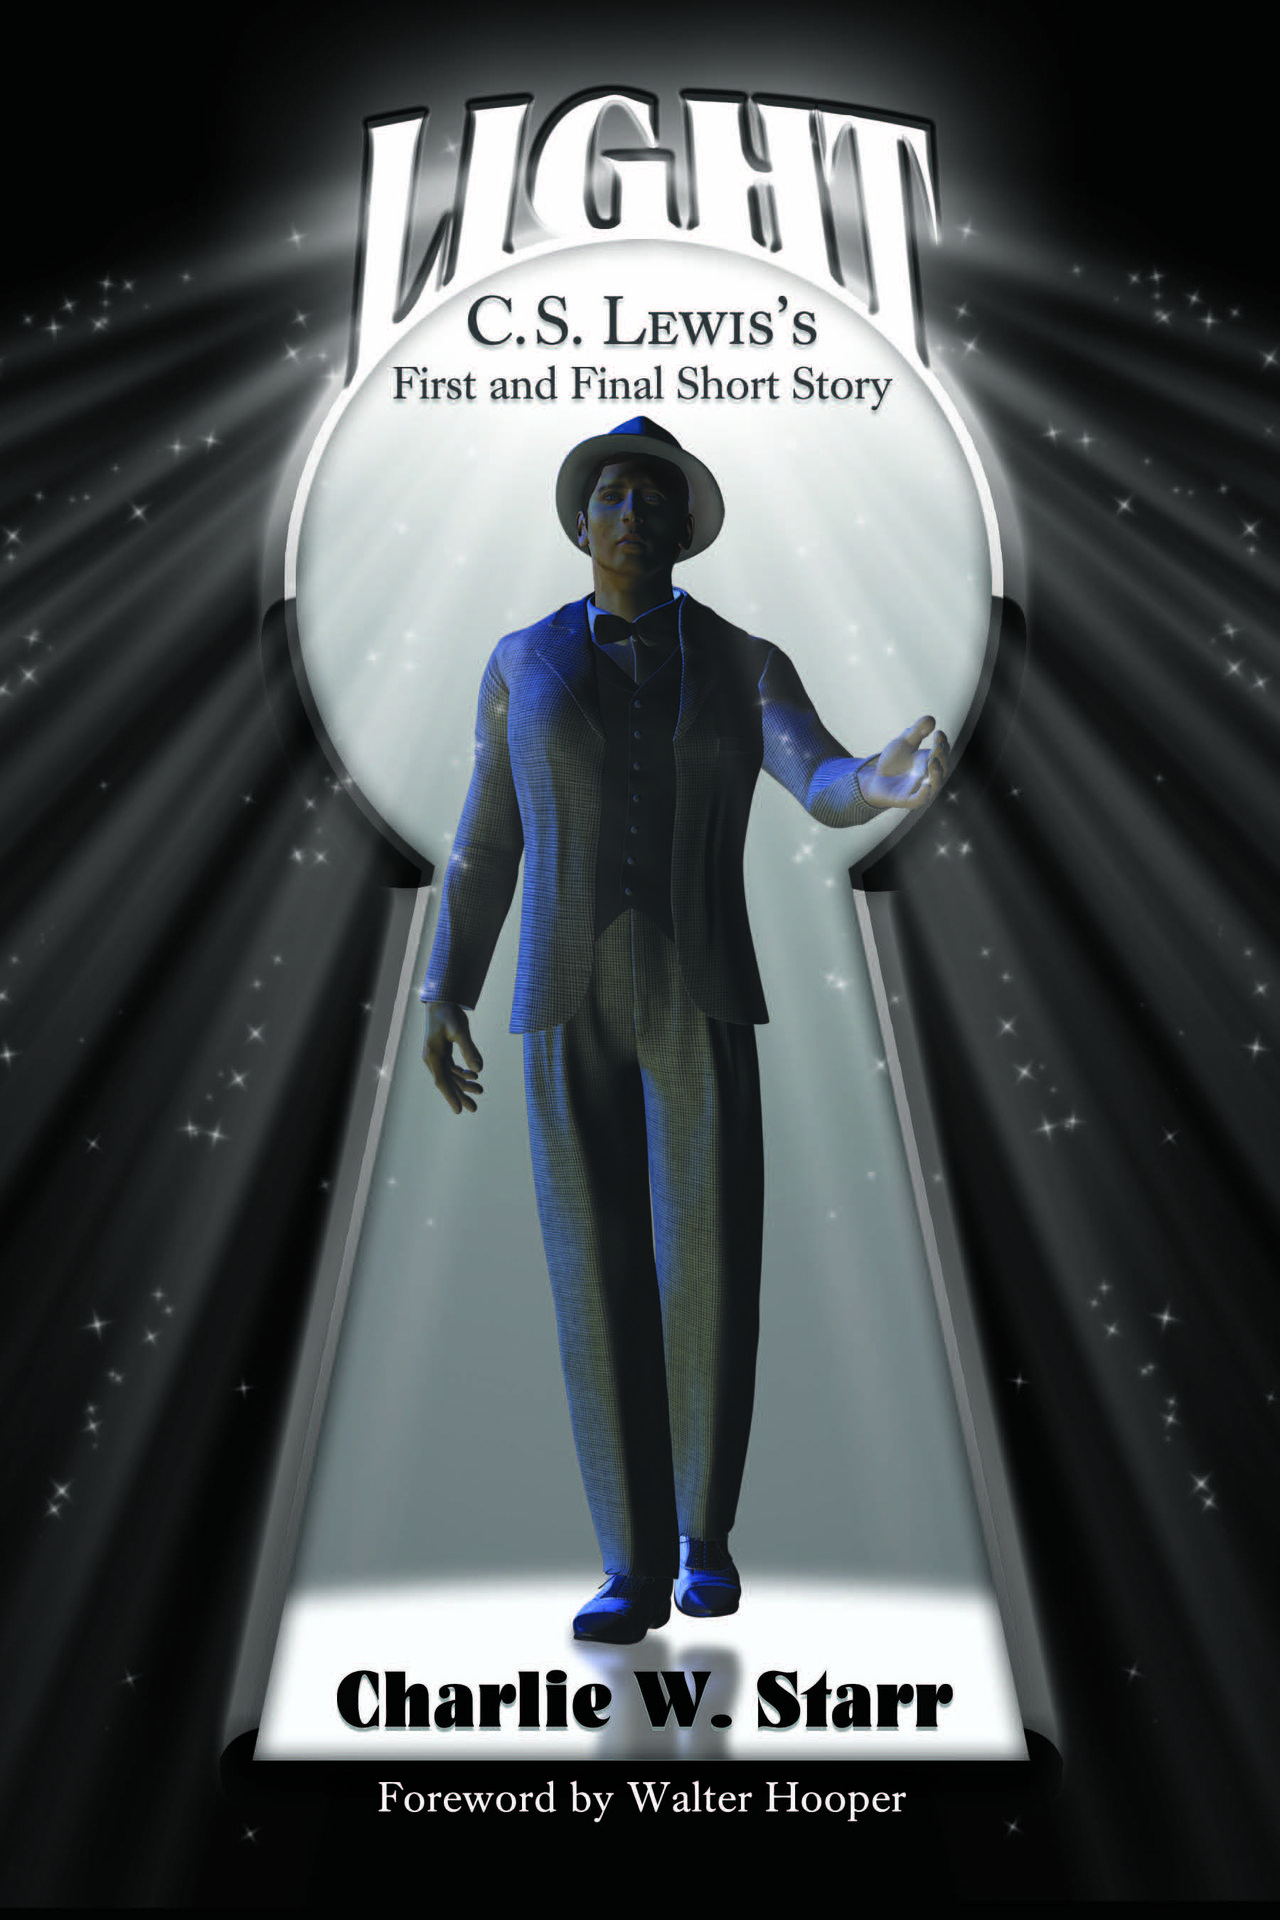 Light: C.S. Lewis's First and Final Short Story